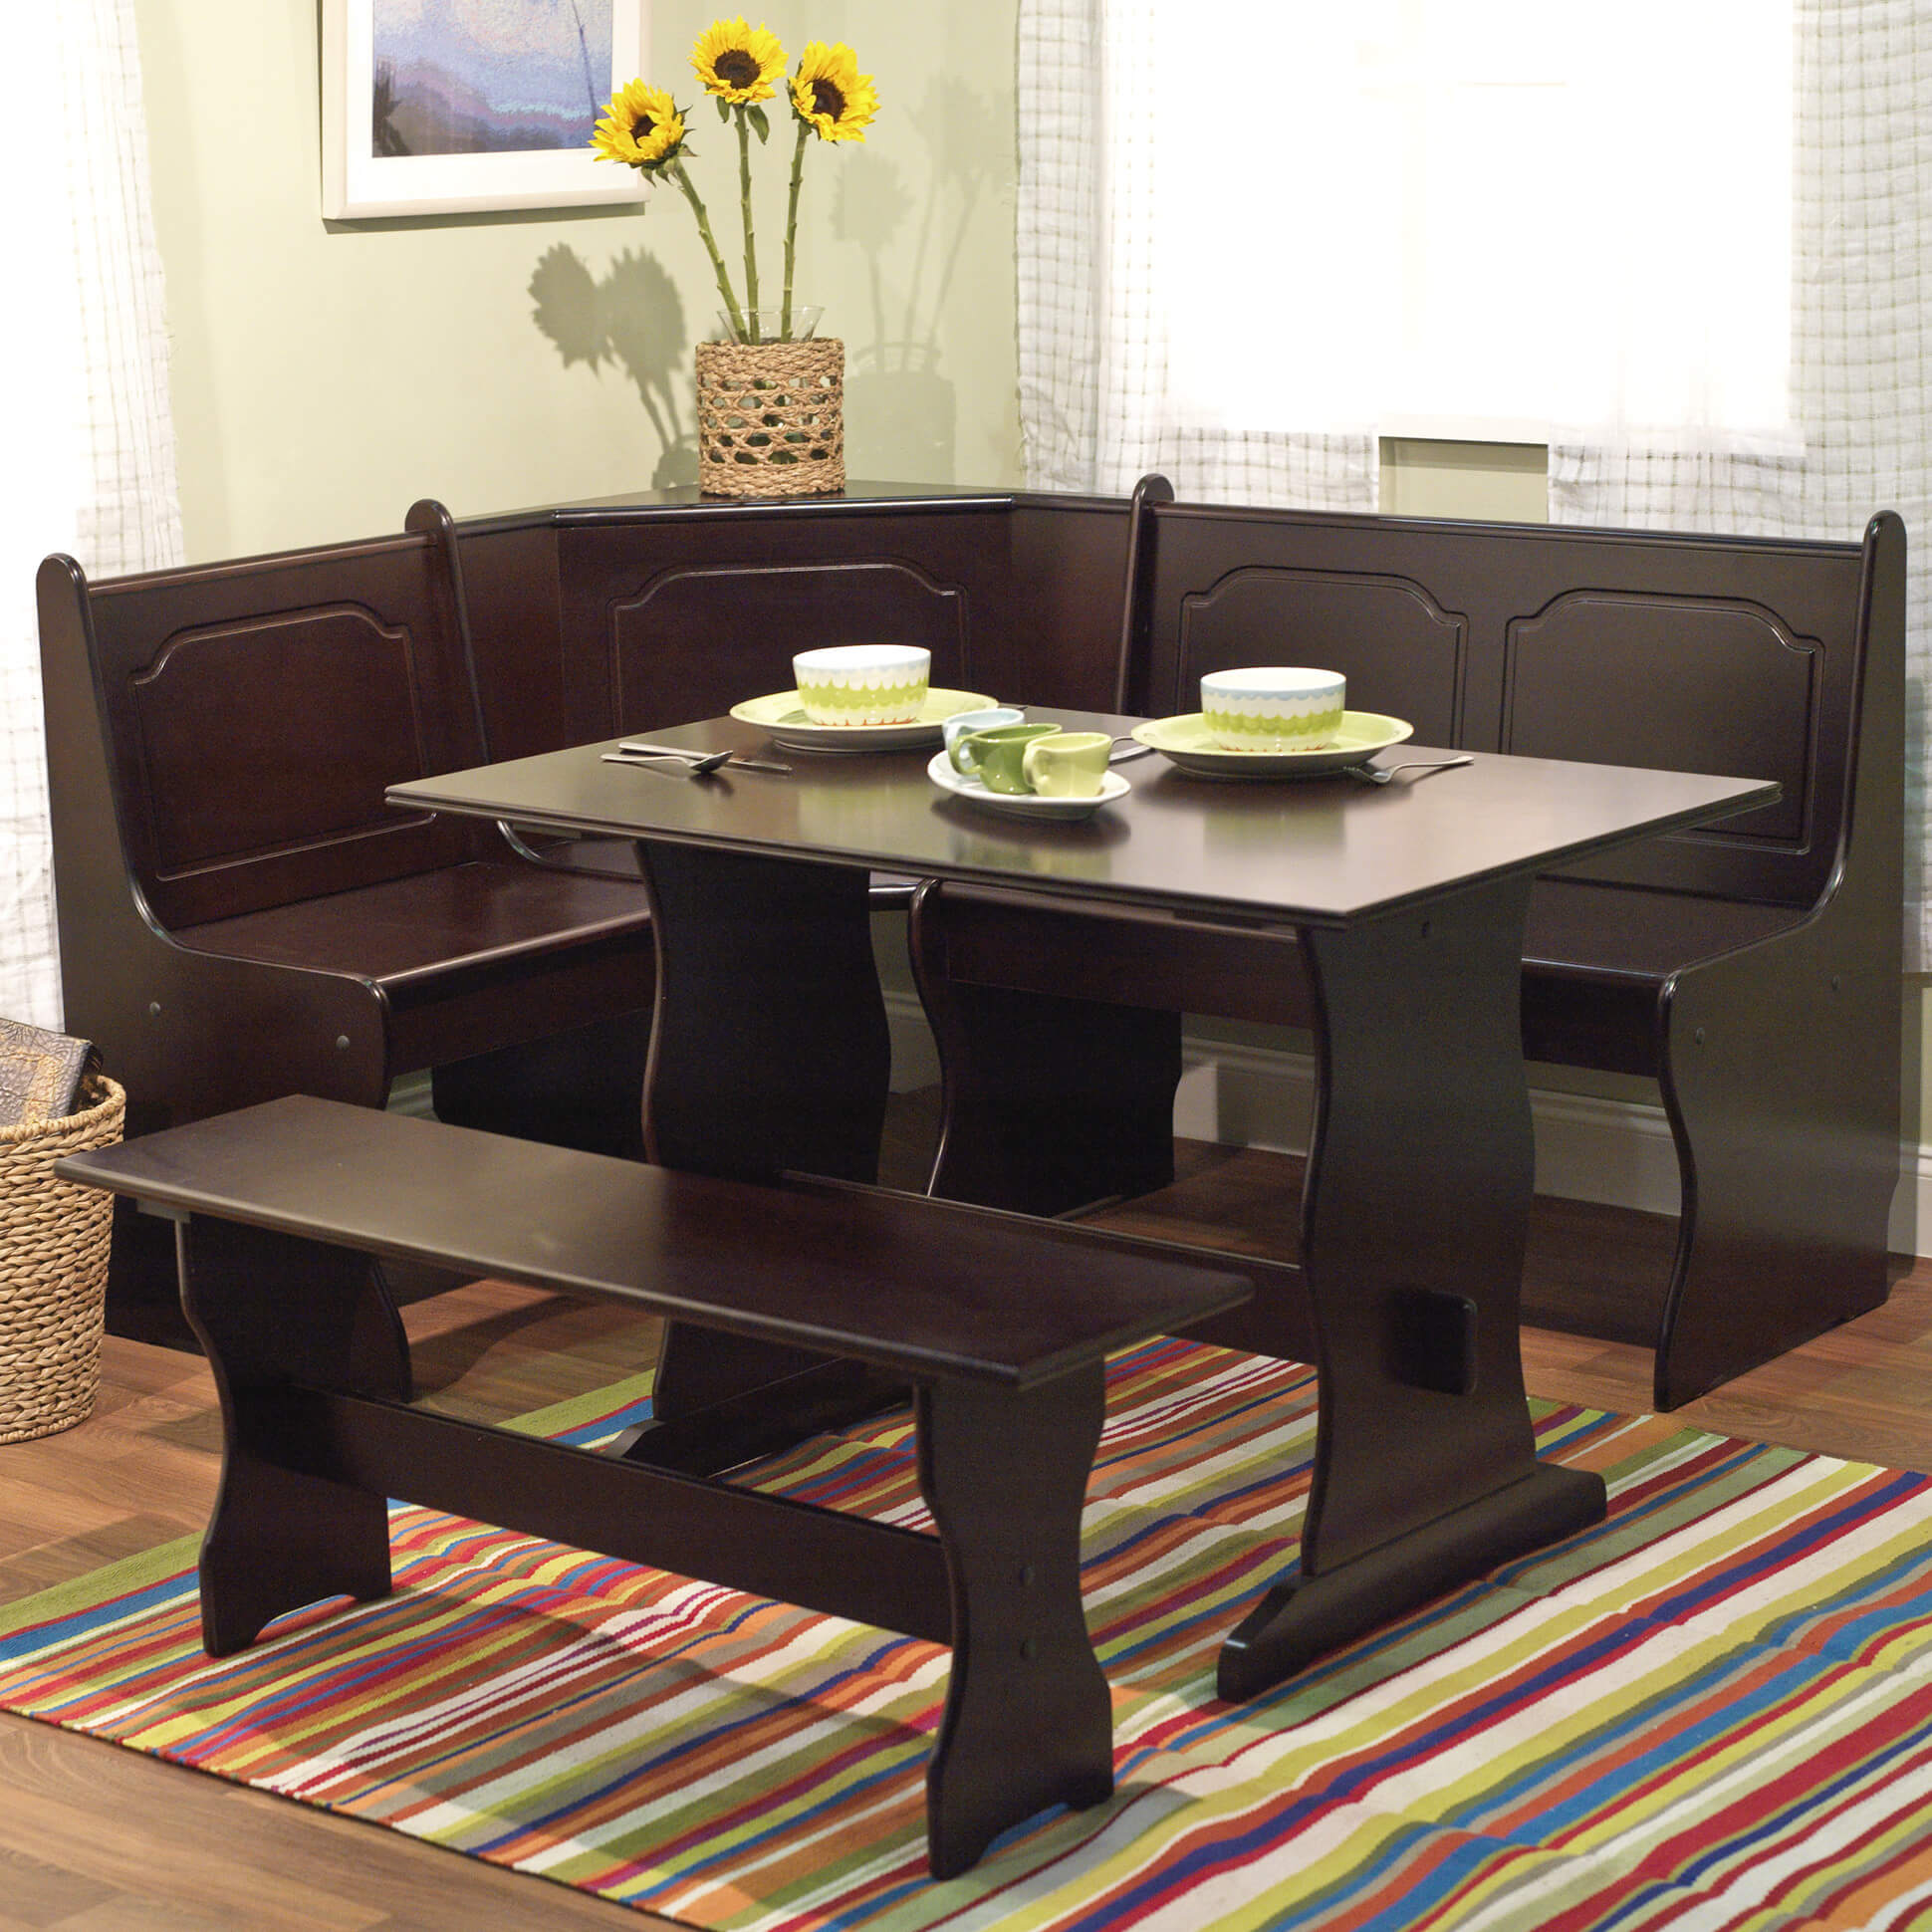 tms breakfast nook - Breakfast Nook Kitchen Table Sets